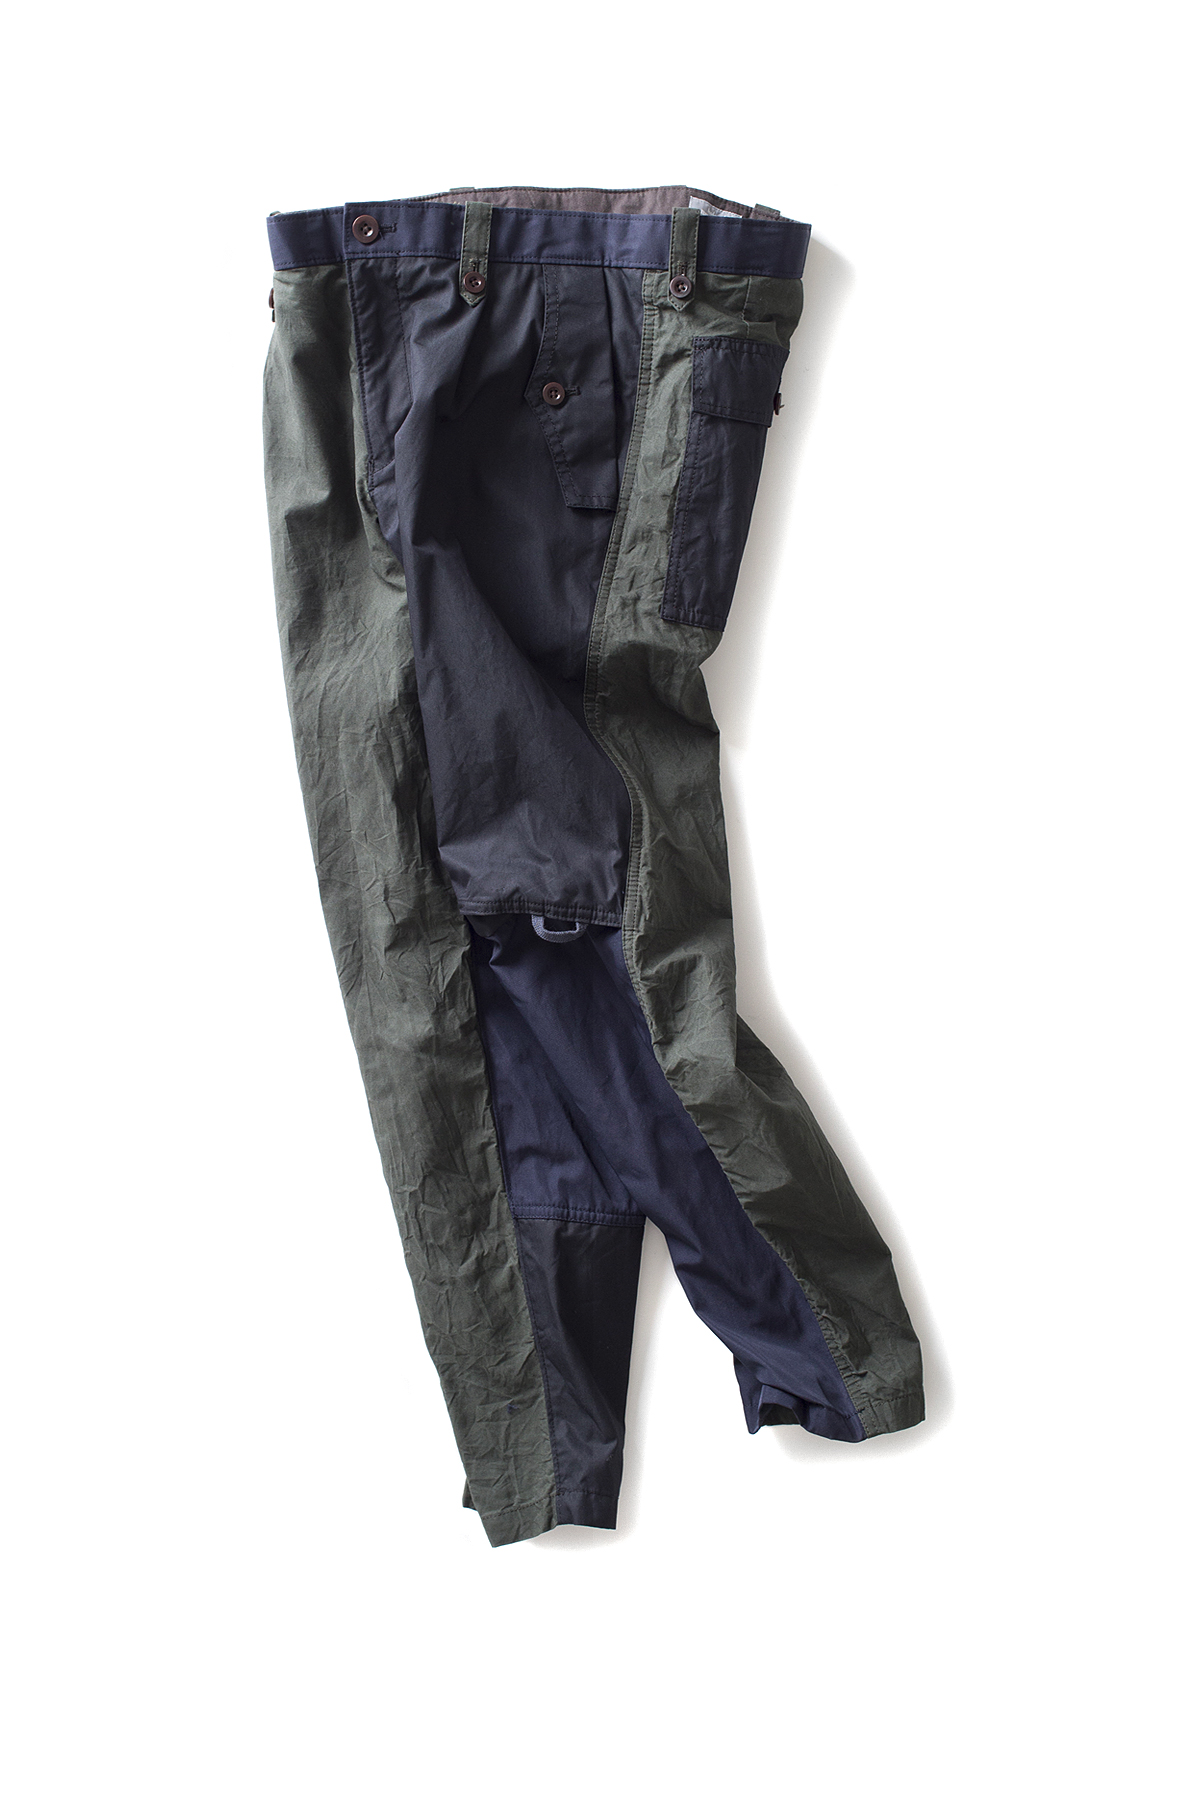 kolor / BEACON : Paraffin Coated Cropped Military Pants (Olive x Navy)